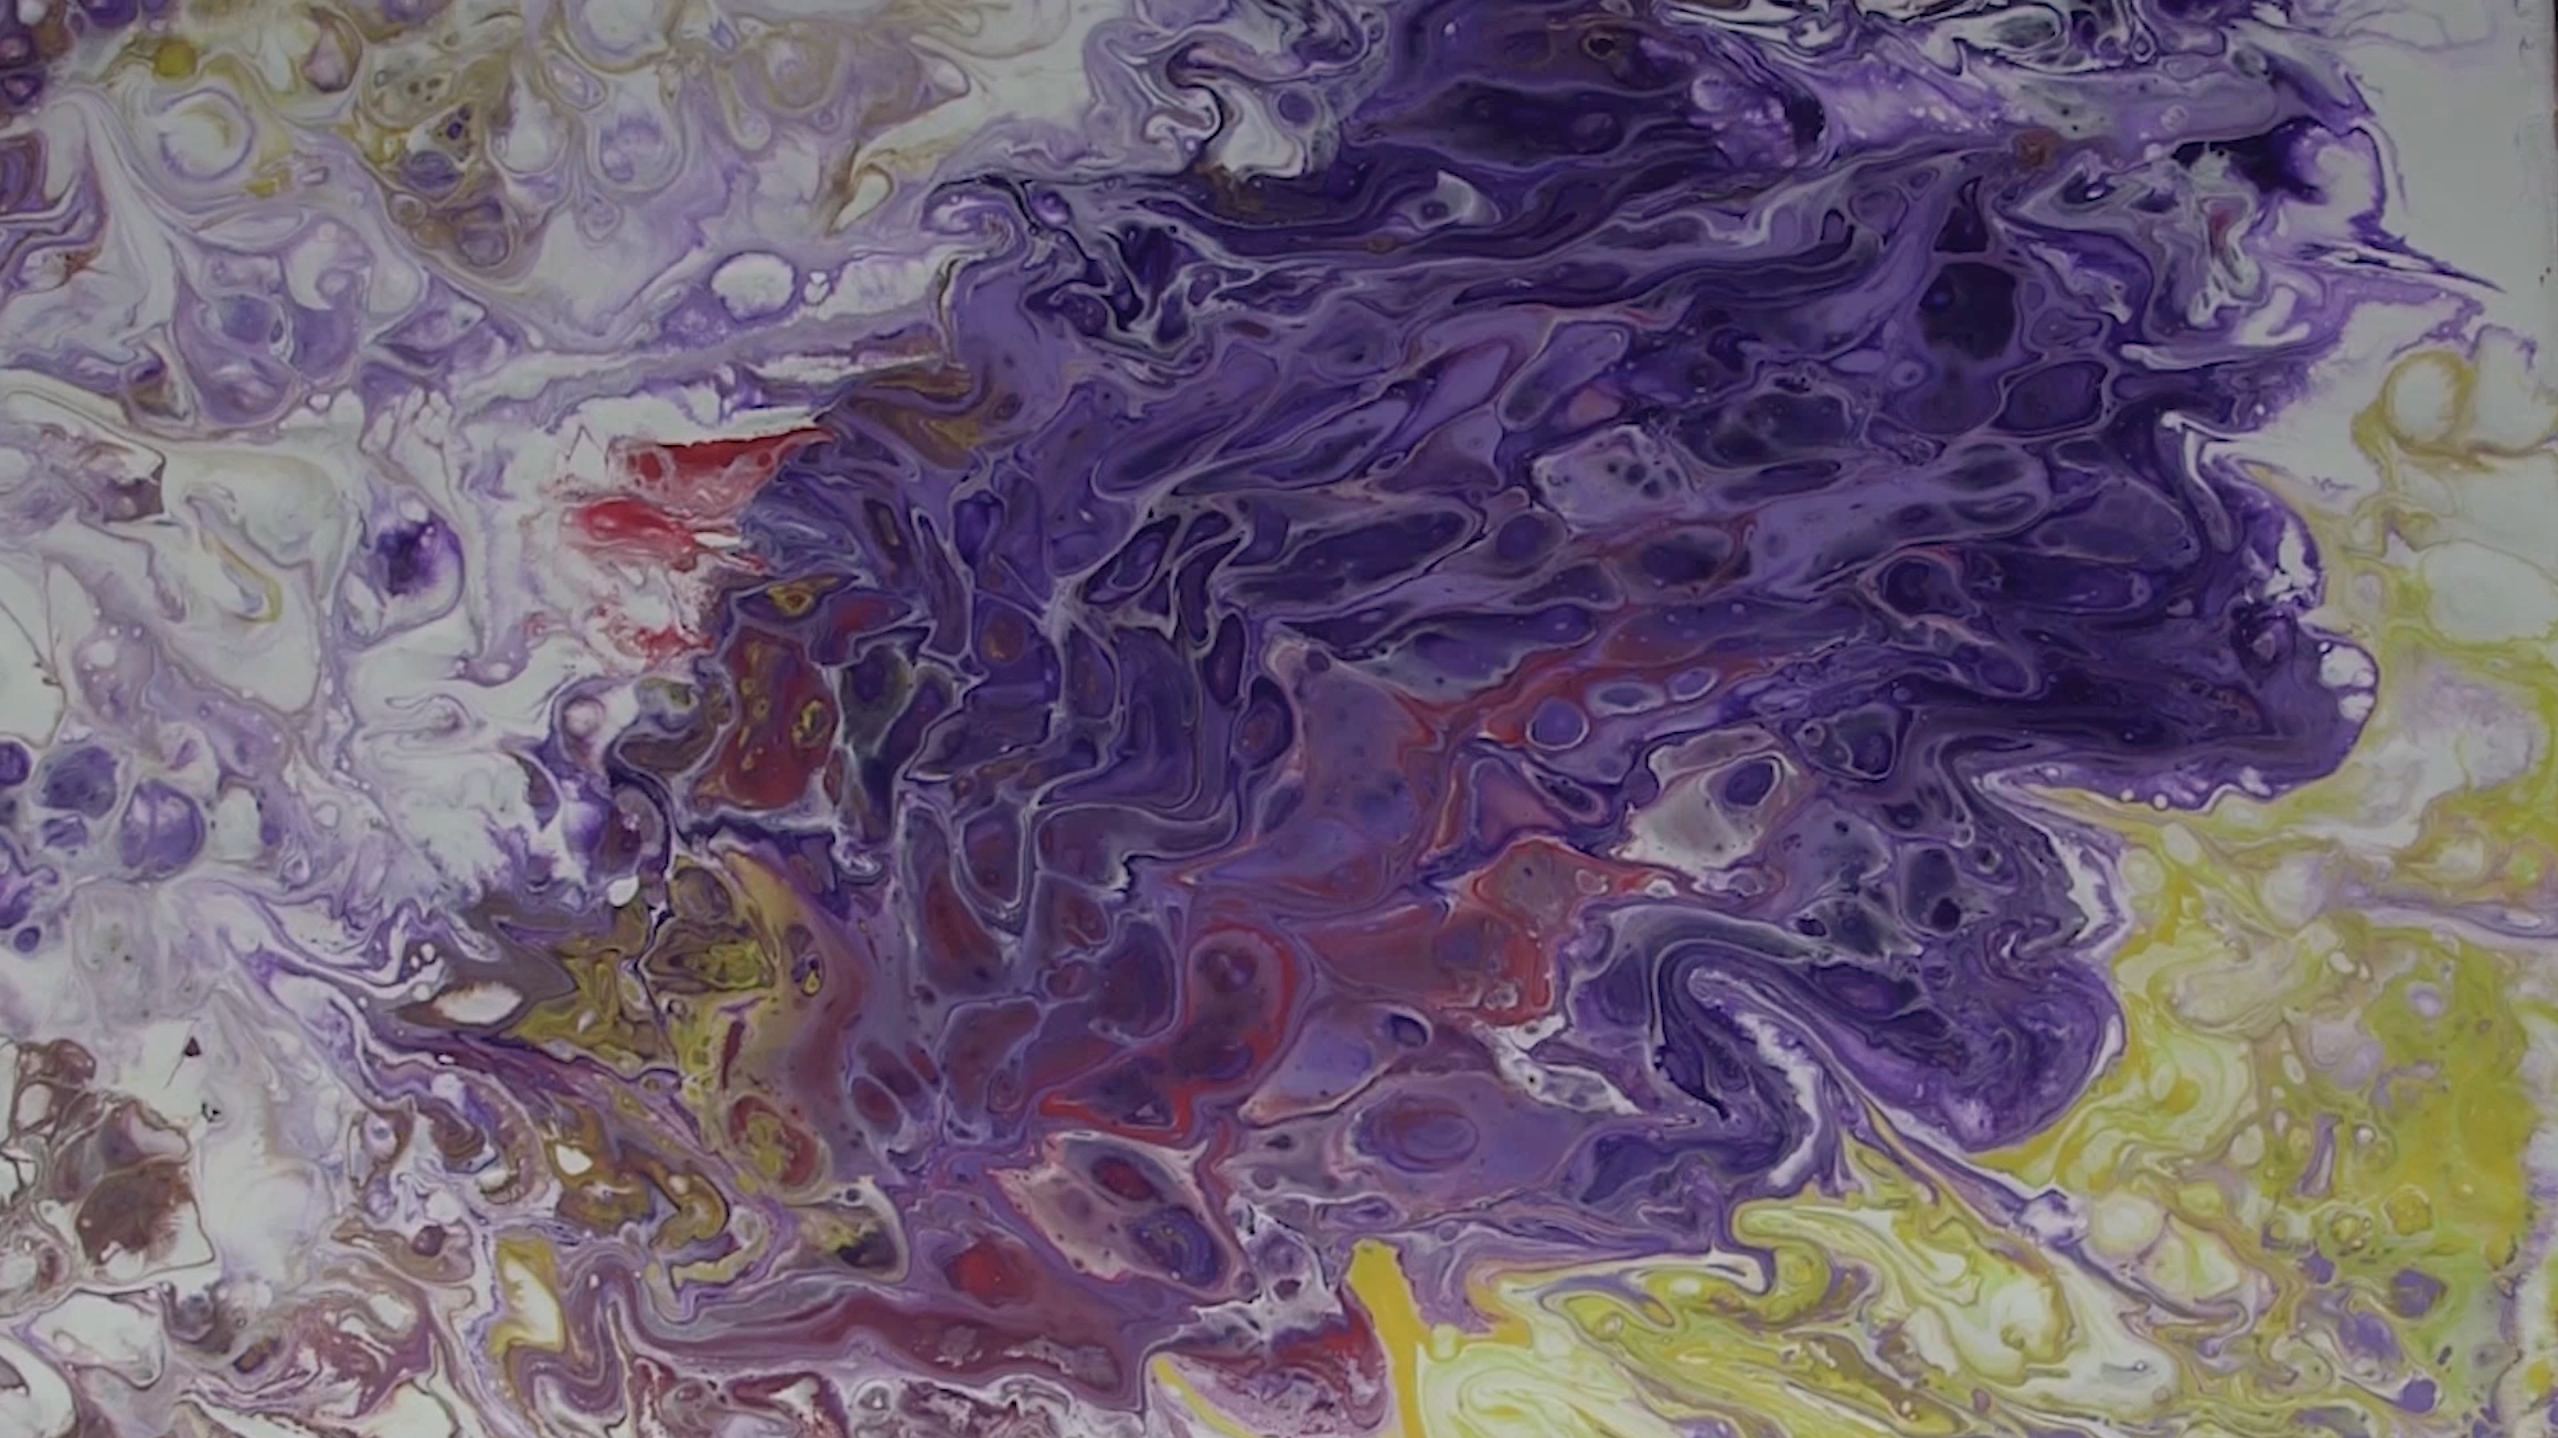 Top down view of abstract painting